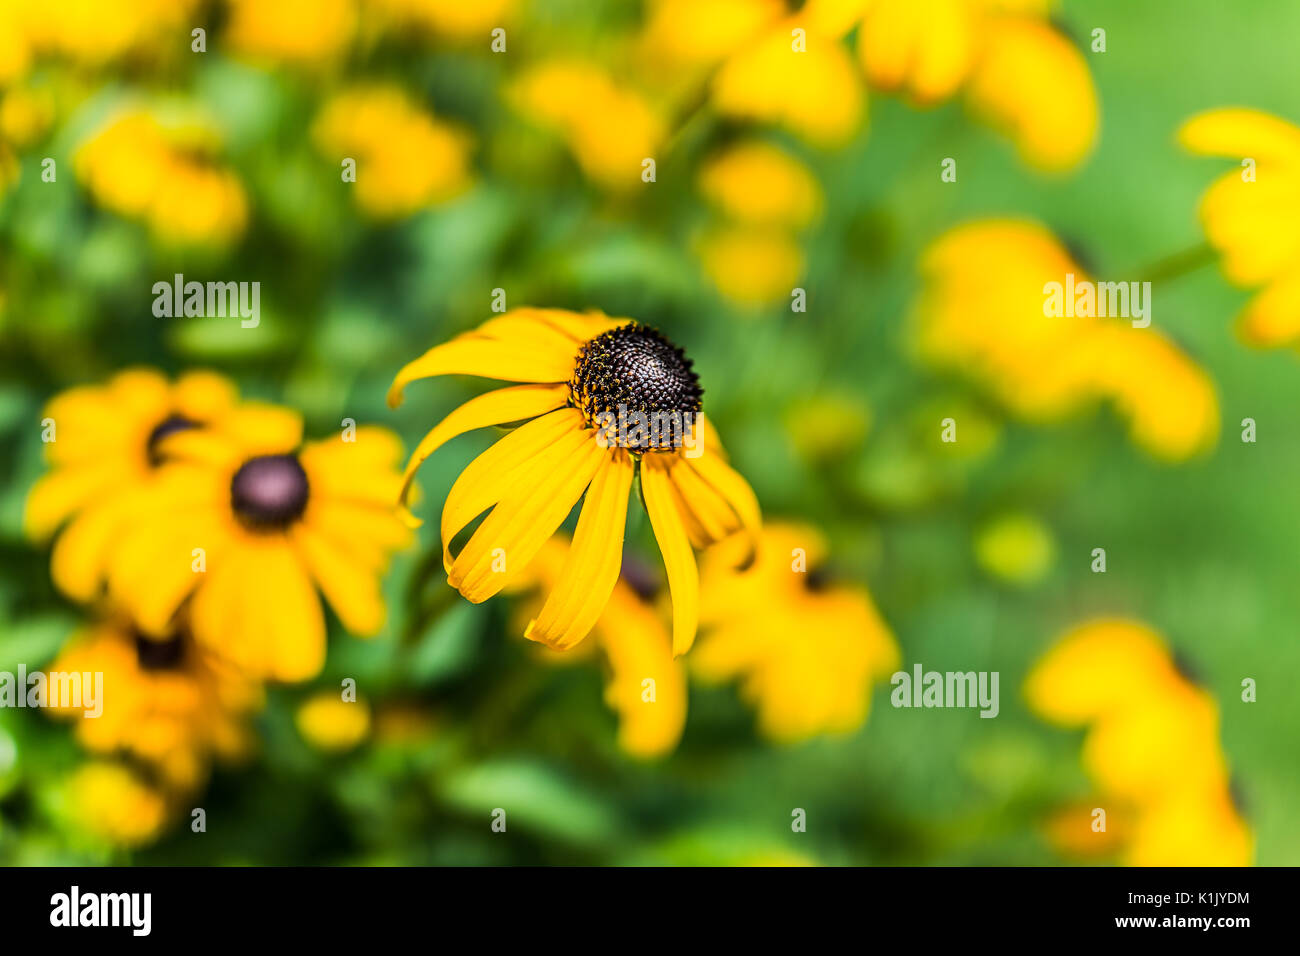 Flower With Black Center Stock Photos Flower With Black Center